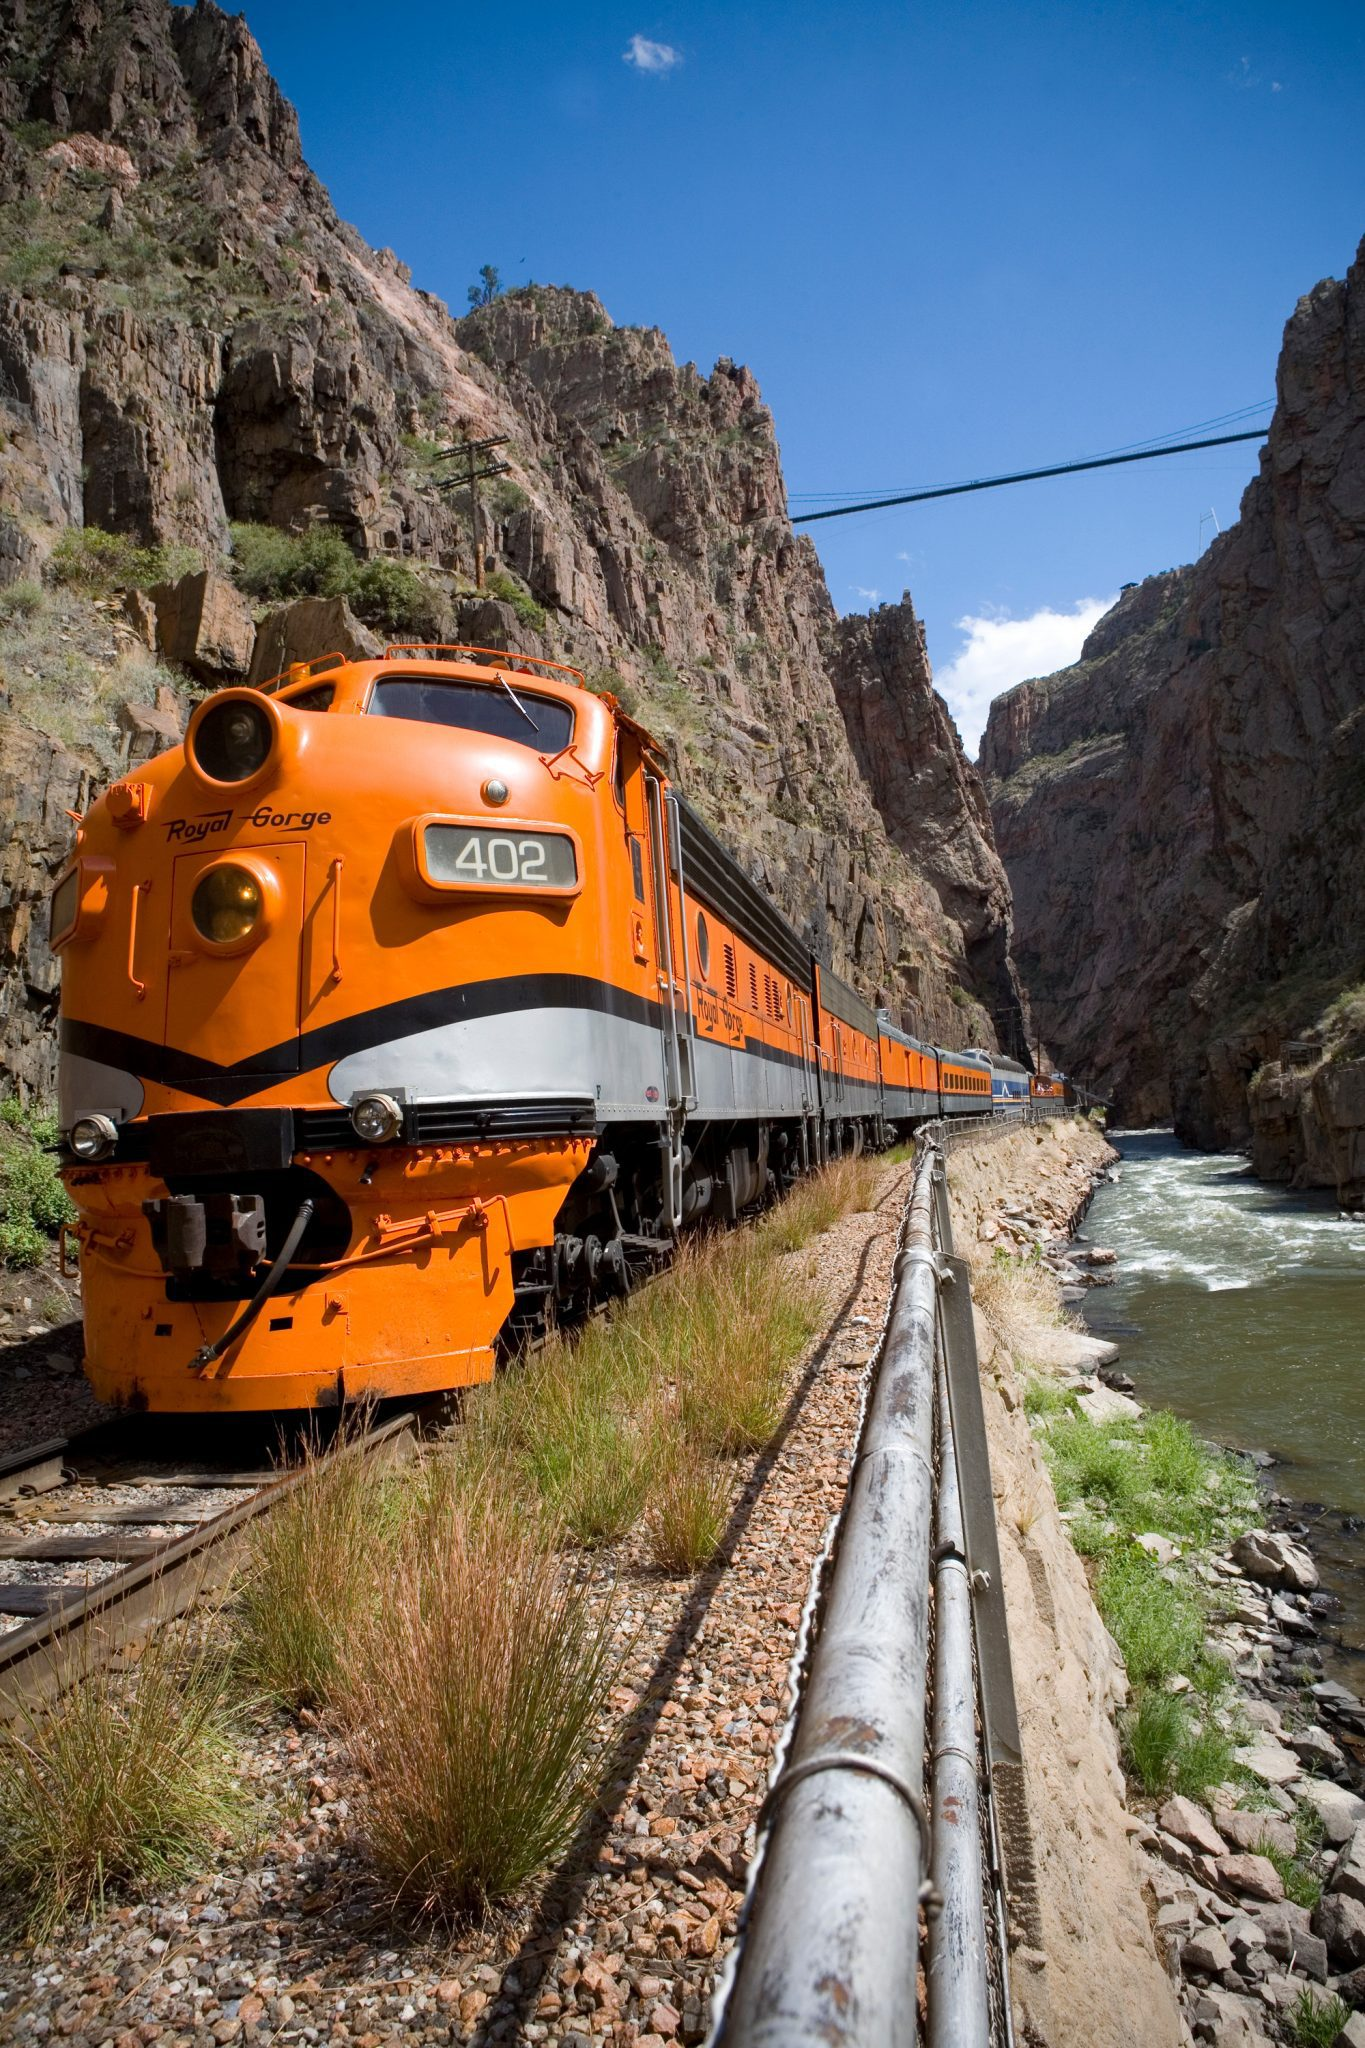 The Royal Gorge Route Railroad takes you on a beautiful journey along the Arkansas River